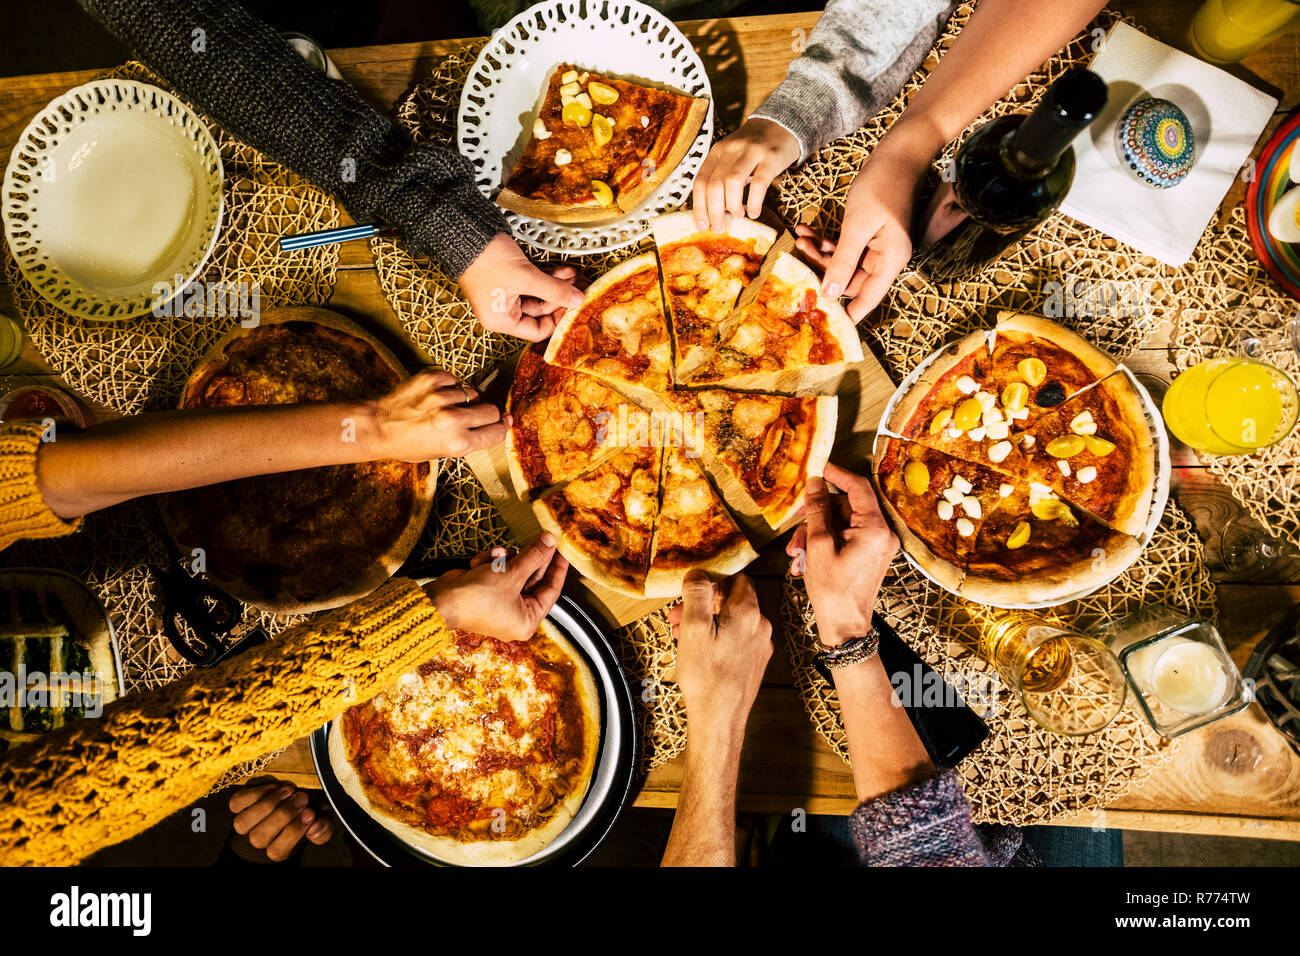 People eat pizza at festive table served for party. Friends celebrate with catering food on wooden table top view. Woman and man's yands take the piec - Stock Image